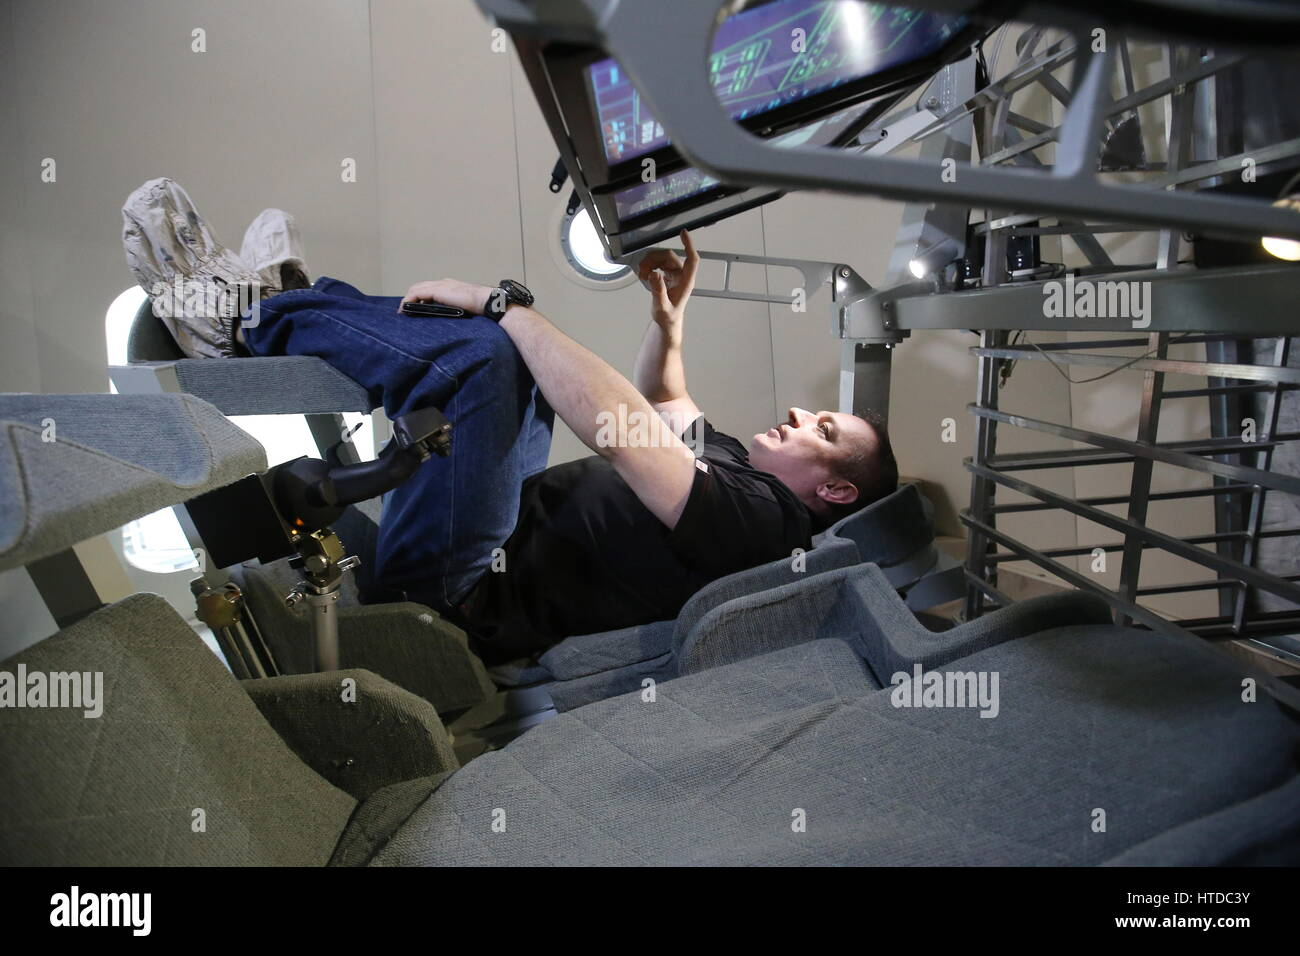 Moscow Region, Russia. 10th Mar, 2017. Mark Sedov, head of the Flight-Test Service at RKK Energia, inside a mock - Stock Image